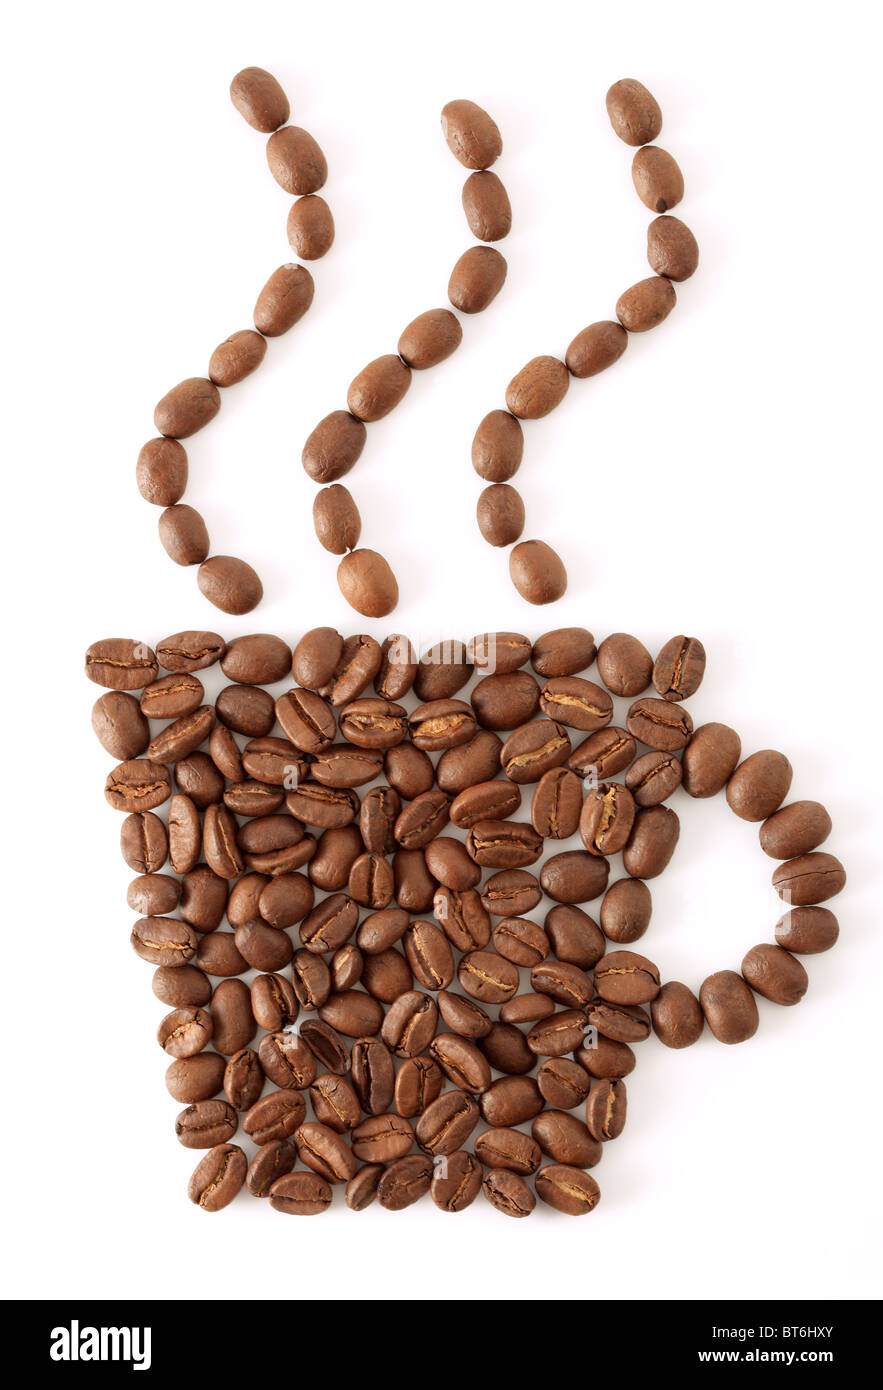 Coffee bean cup - Stock Image